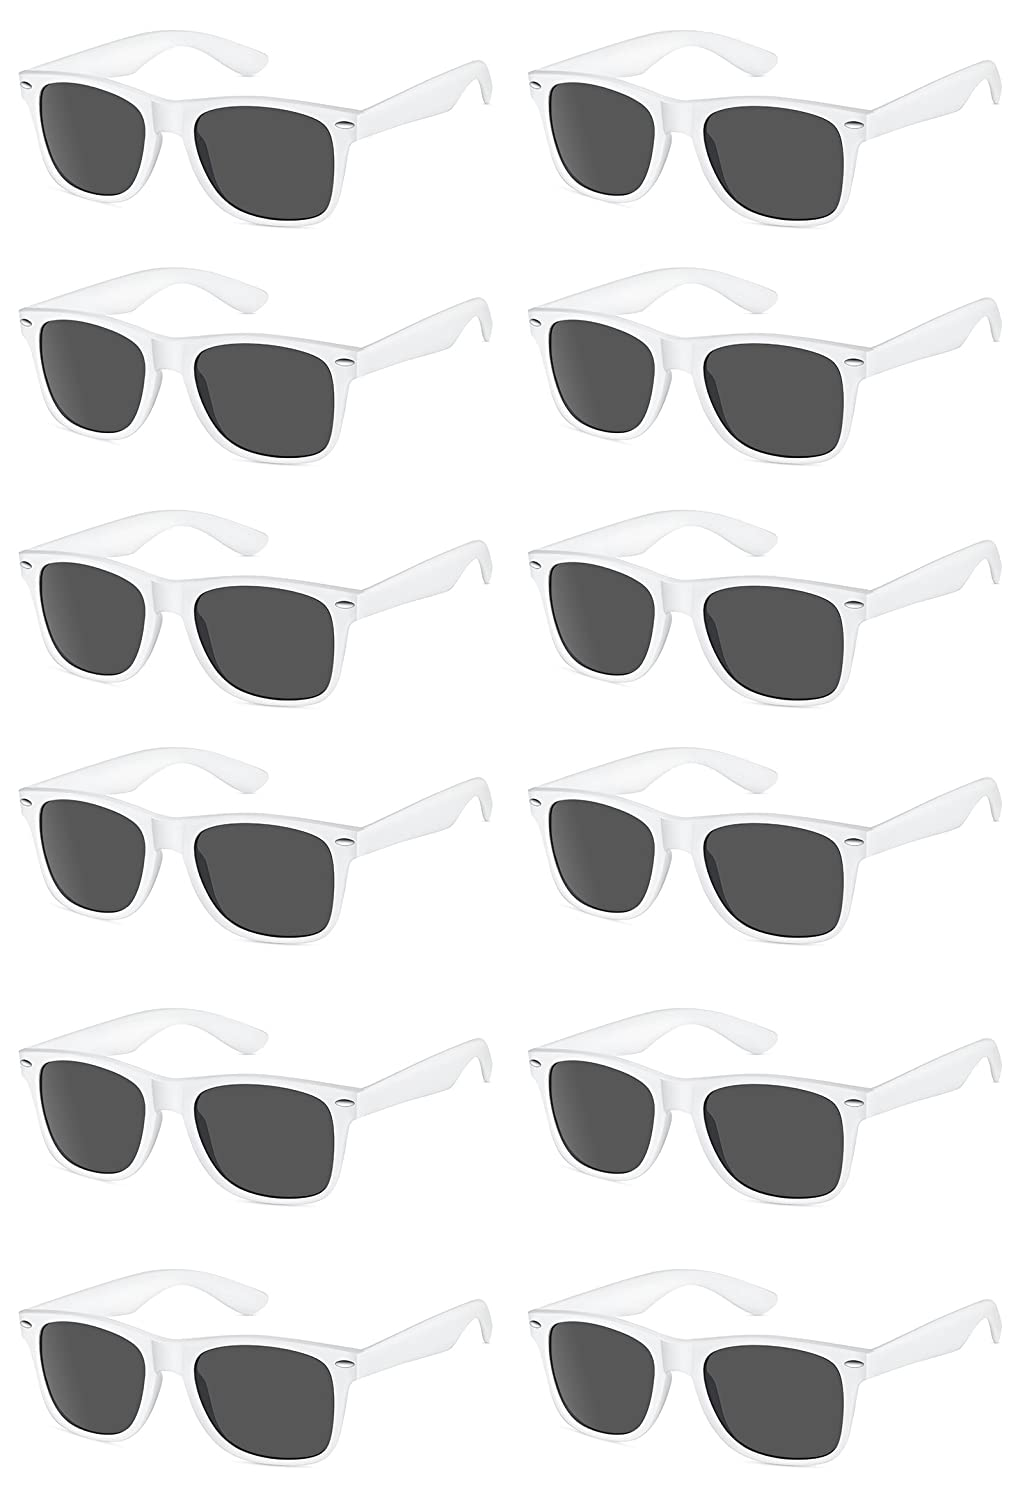 5722e80200 Amazon.com  TheGag White Wayfarer Sunglasses Party Pack-12 Pure White  Premium Quality Plastic-Wholesale Bulk  Toys   Games